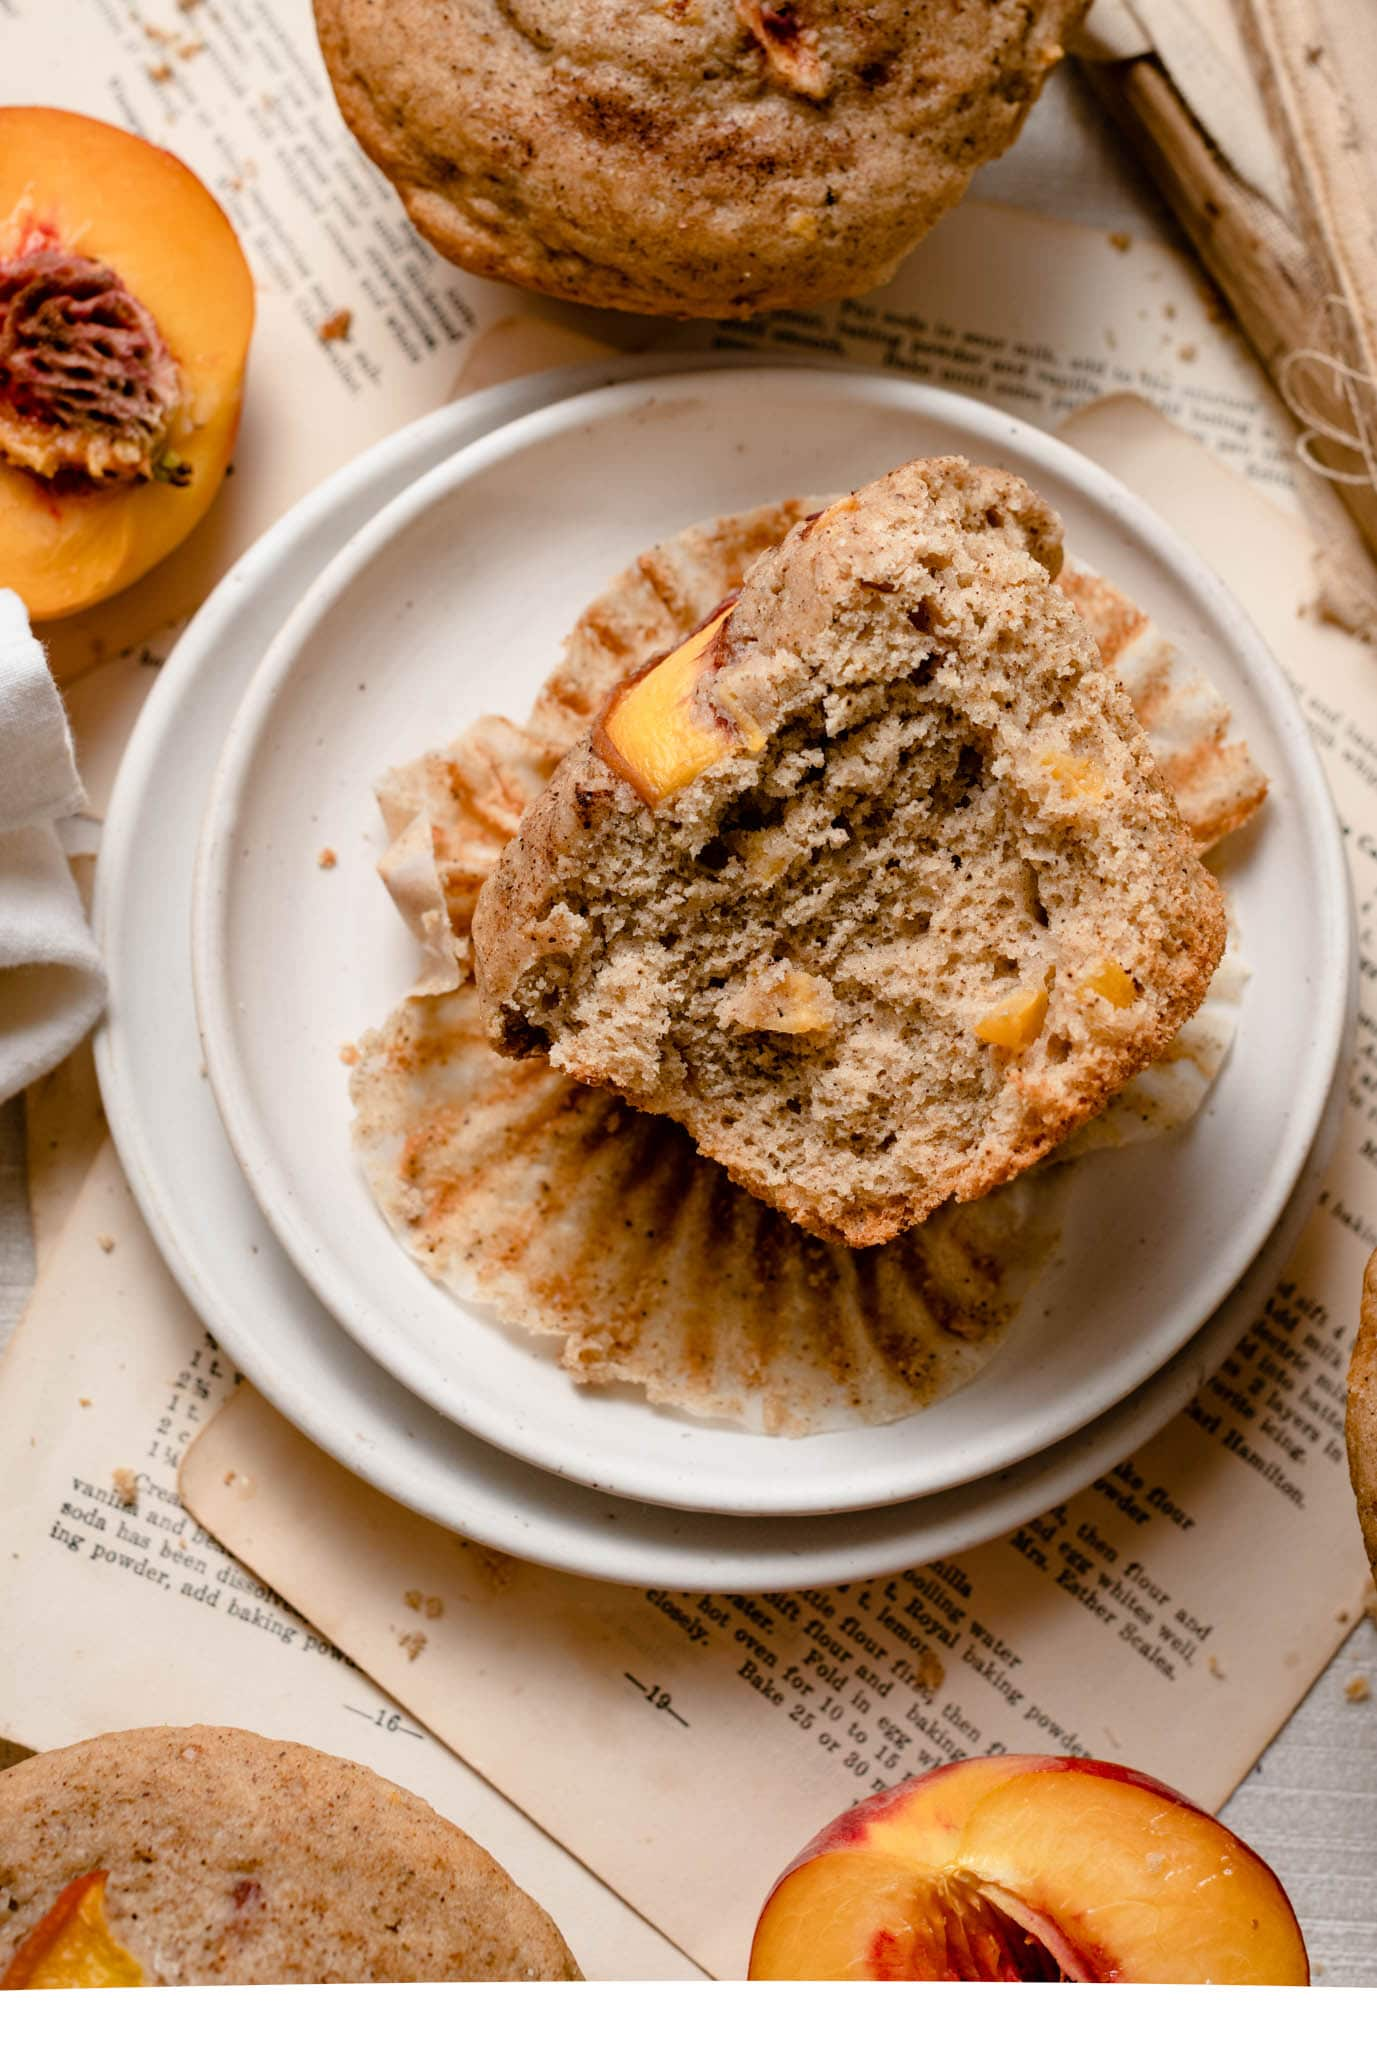 Bakery style peach muffin.